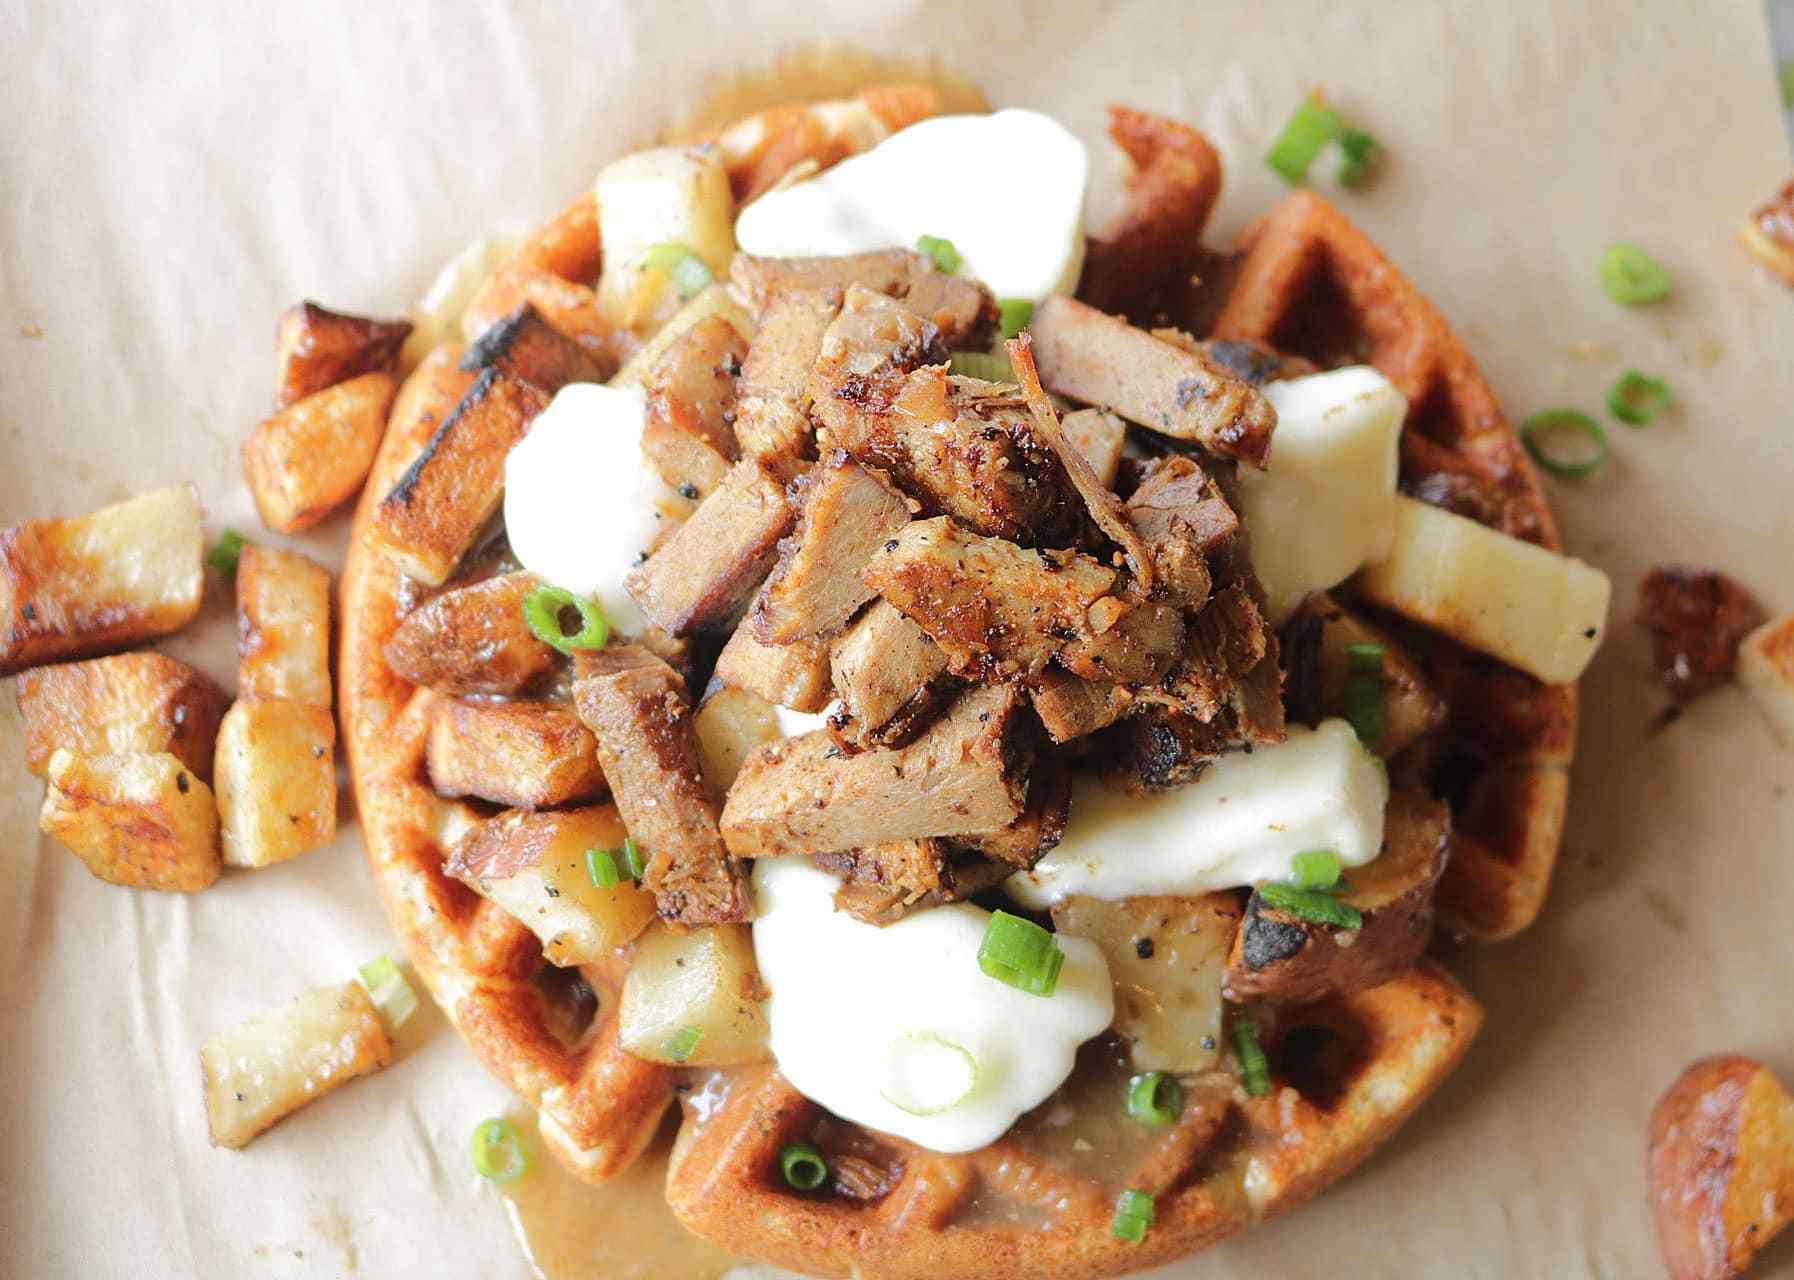 Gluten-free waffle topped with brisket poutine